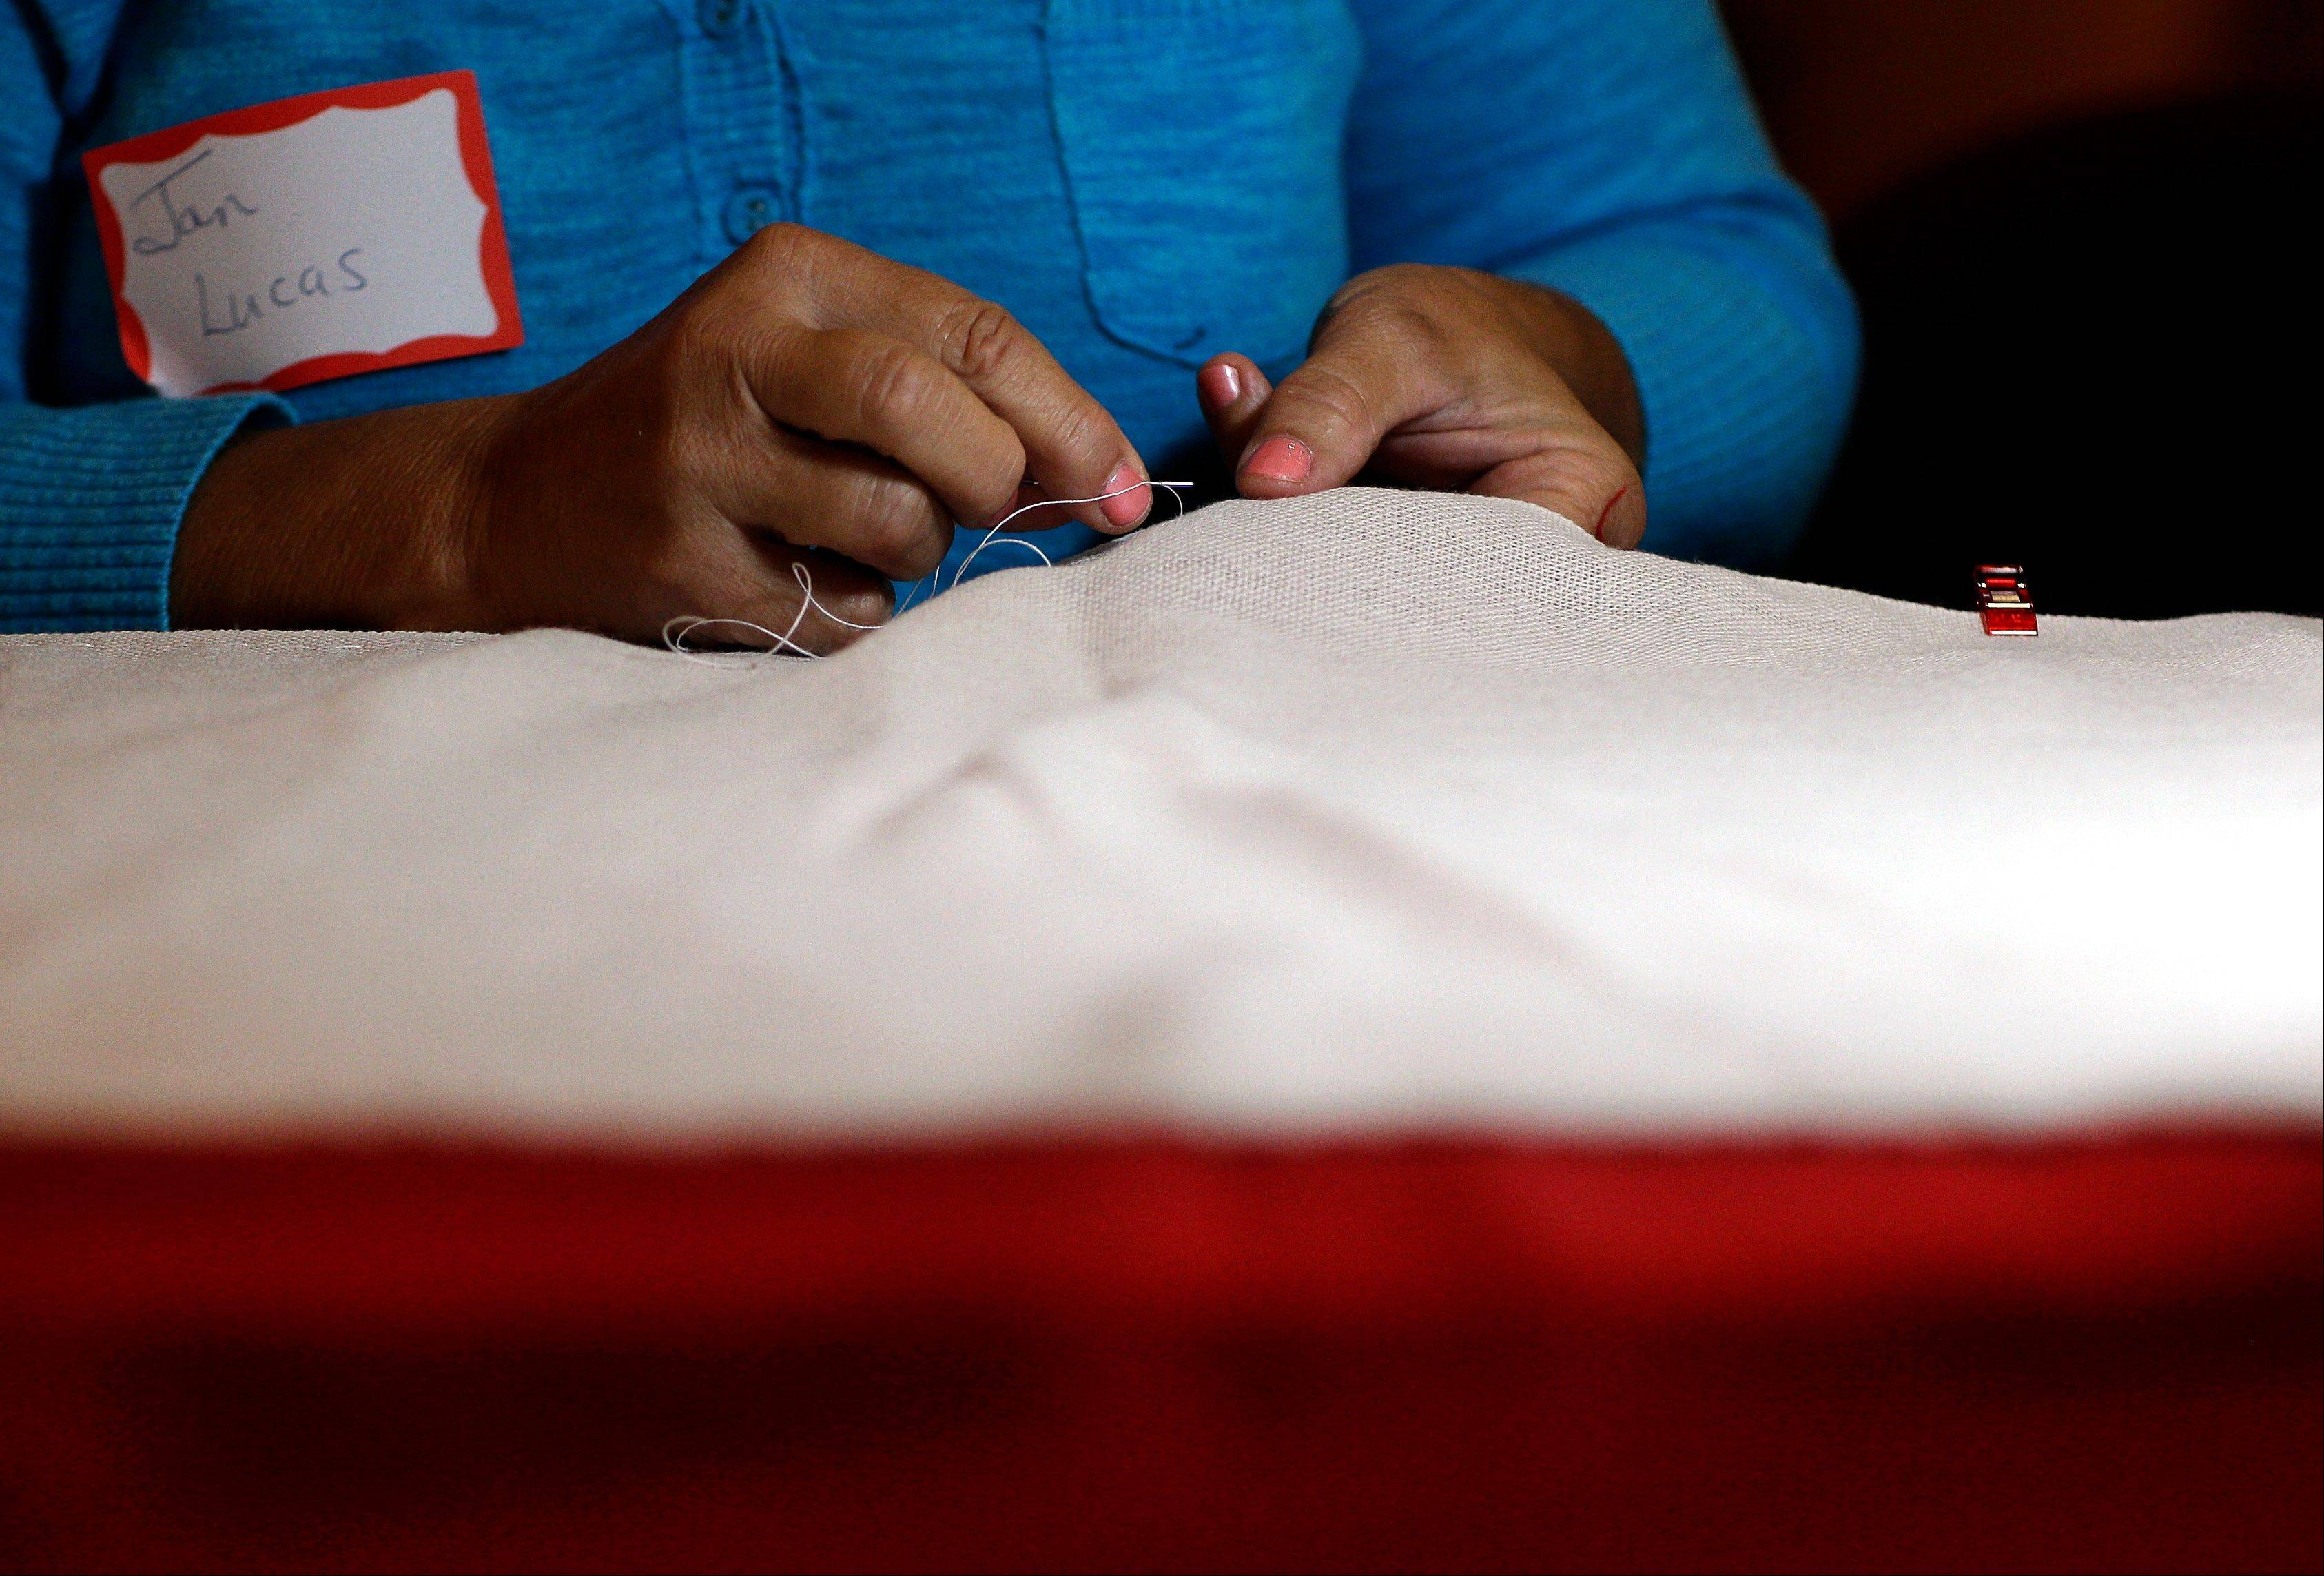 Volunteer Jan Lucas sews part of a replica of the star-spangled banner in Baltimore as part of a project to commemorate the creation of the flag that inspired America�s national anthem.